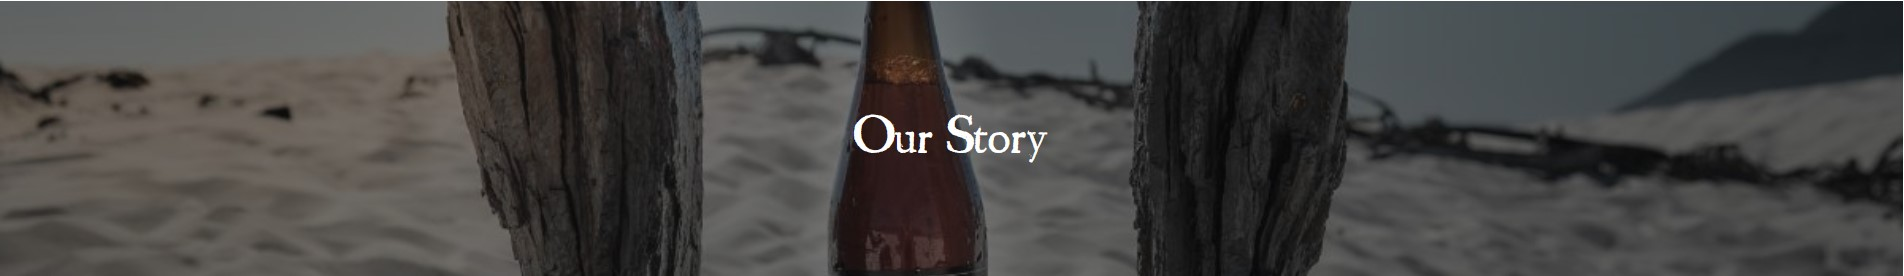 Our story header image